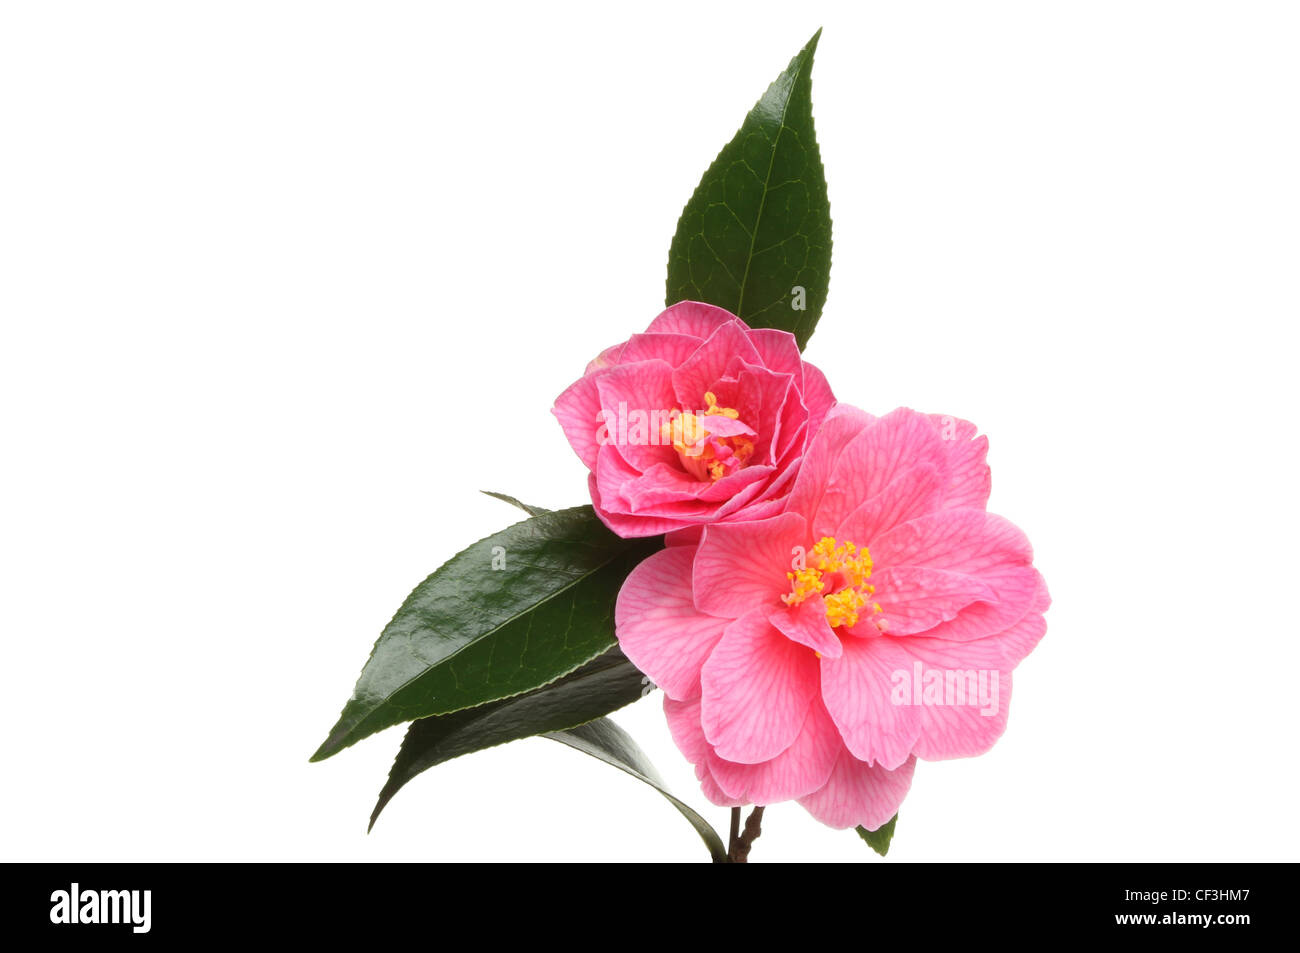 Camellia flowers and foliage isolated against white - Stock Image